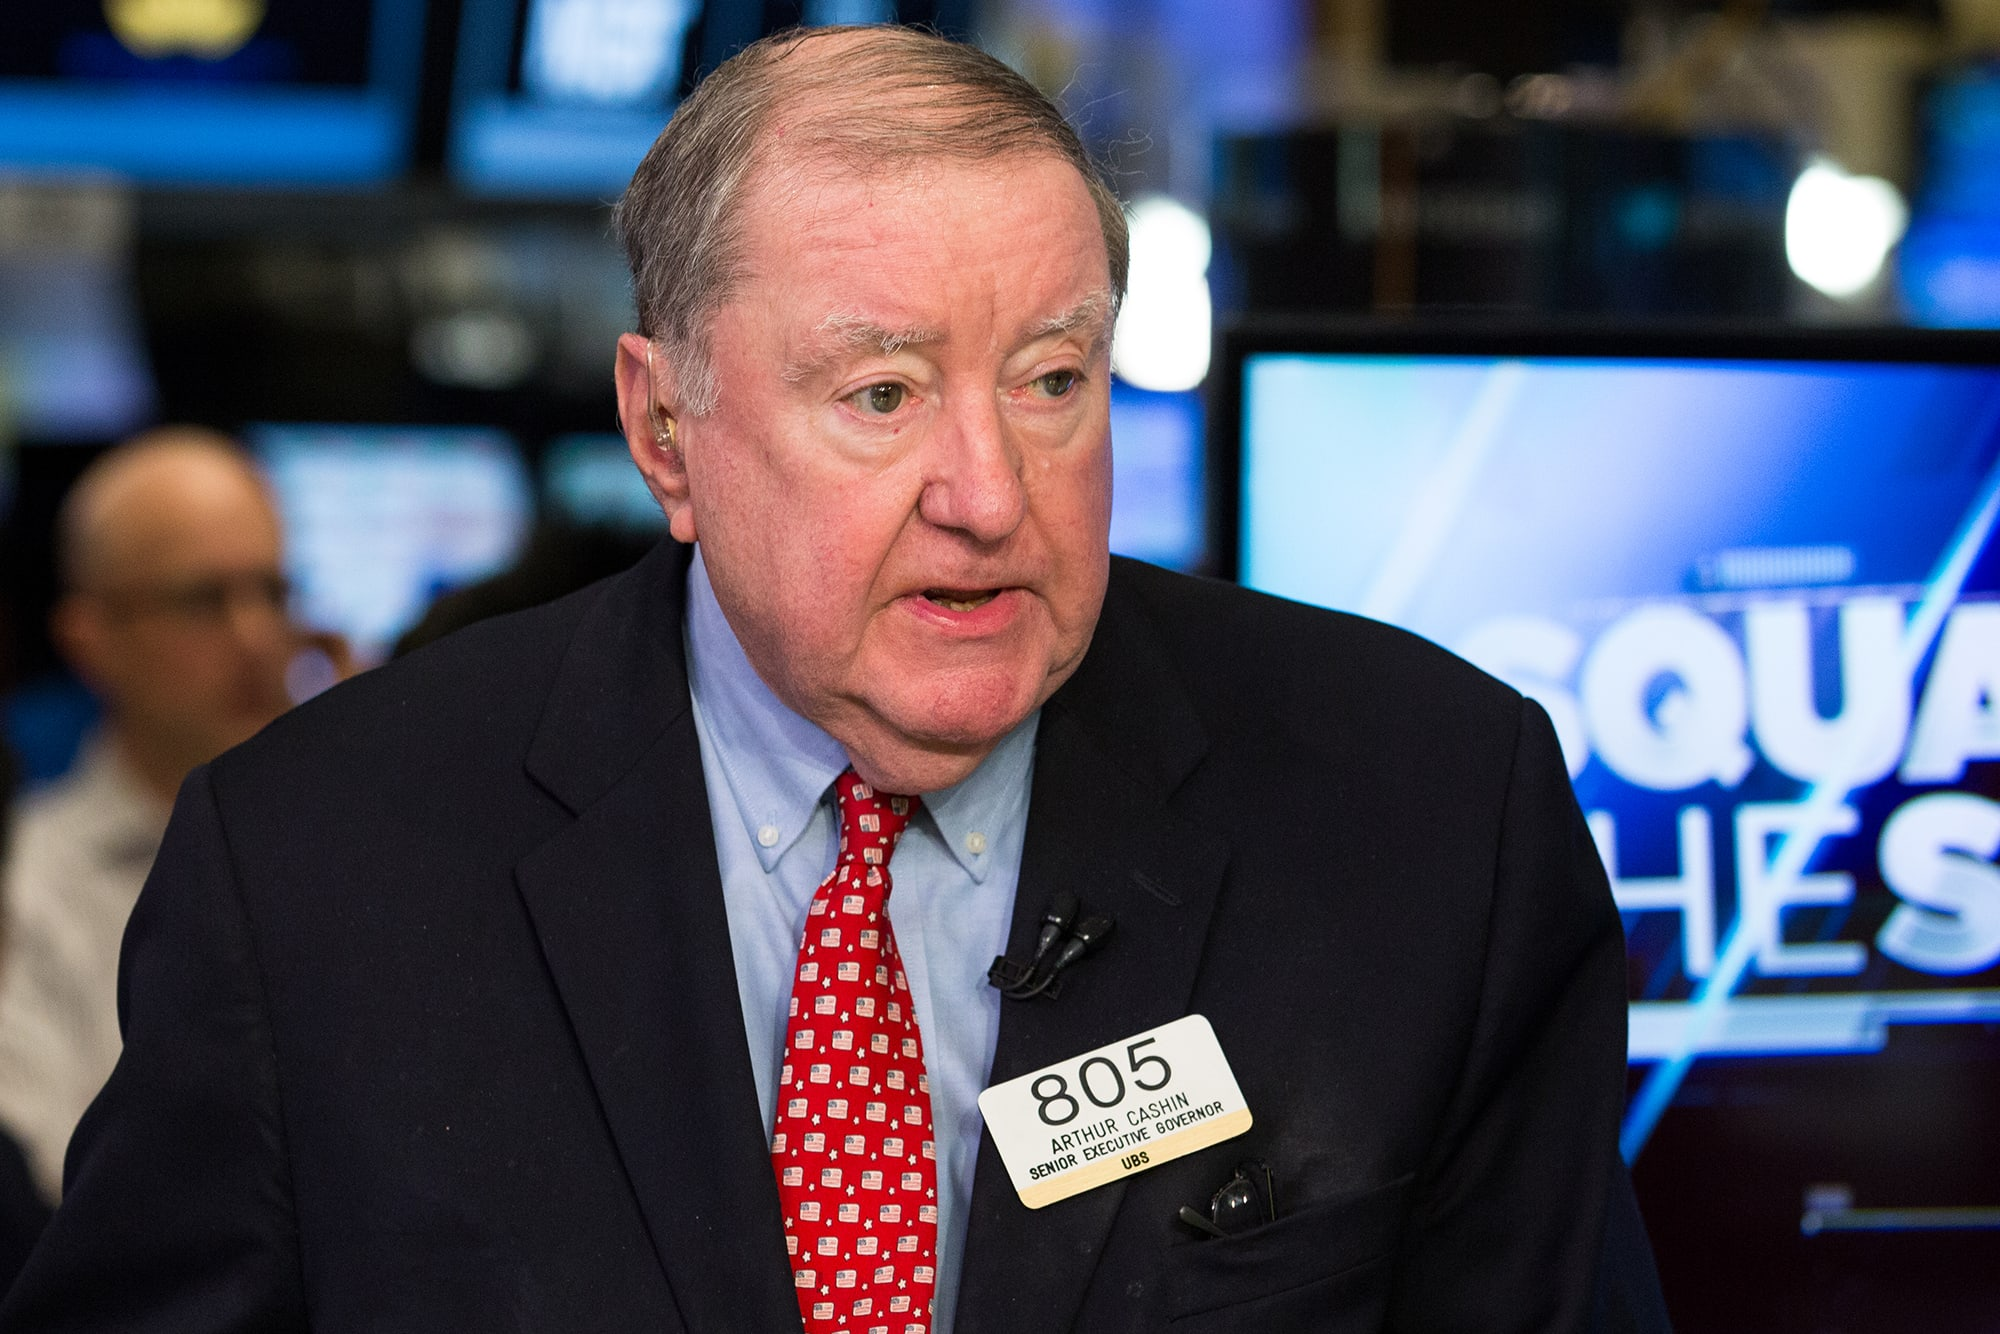 NYSE legend Art Cashin, who got much of 2019 right, gives his predictions for the new year